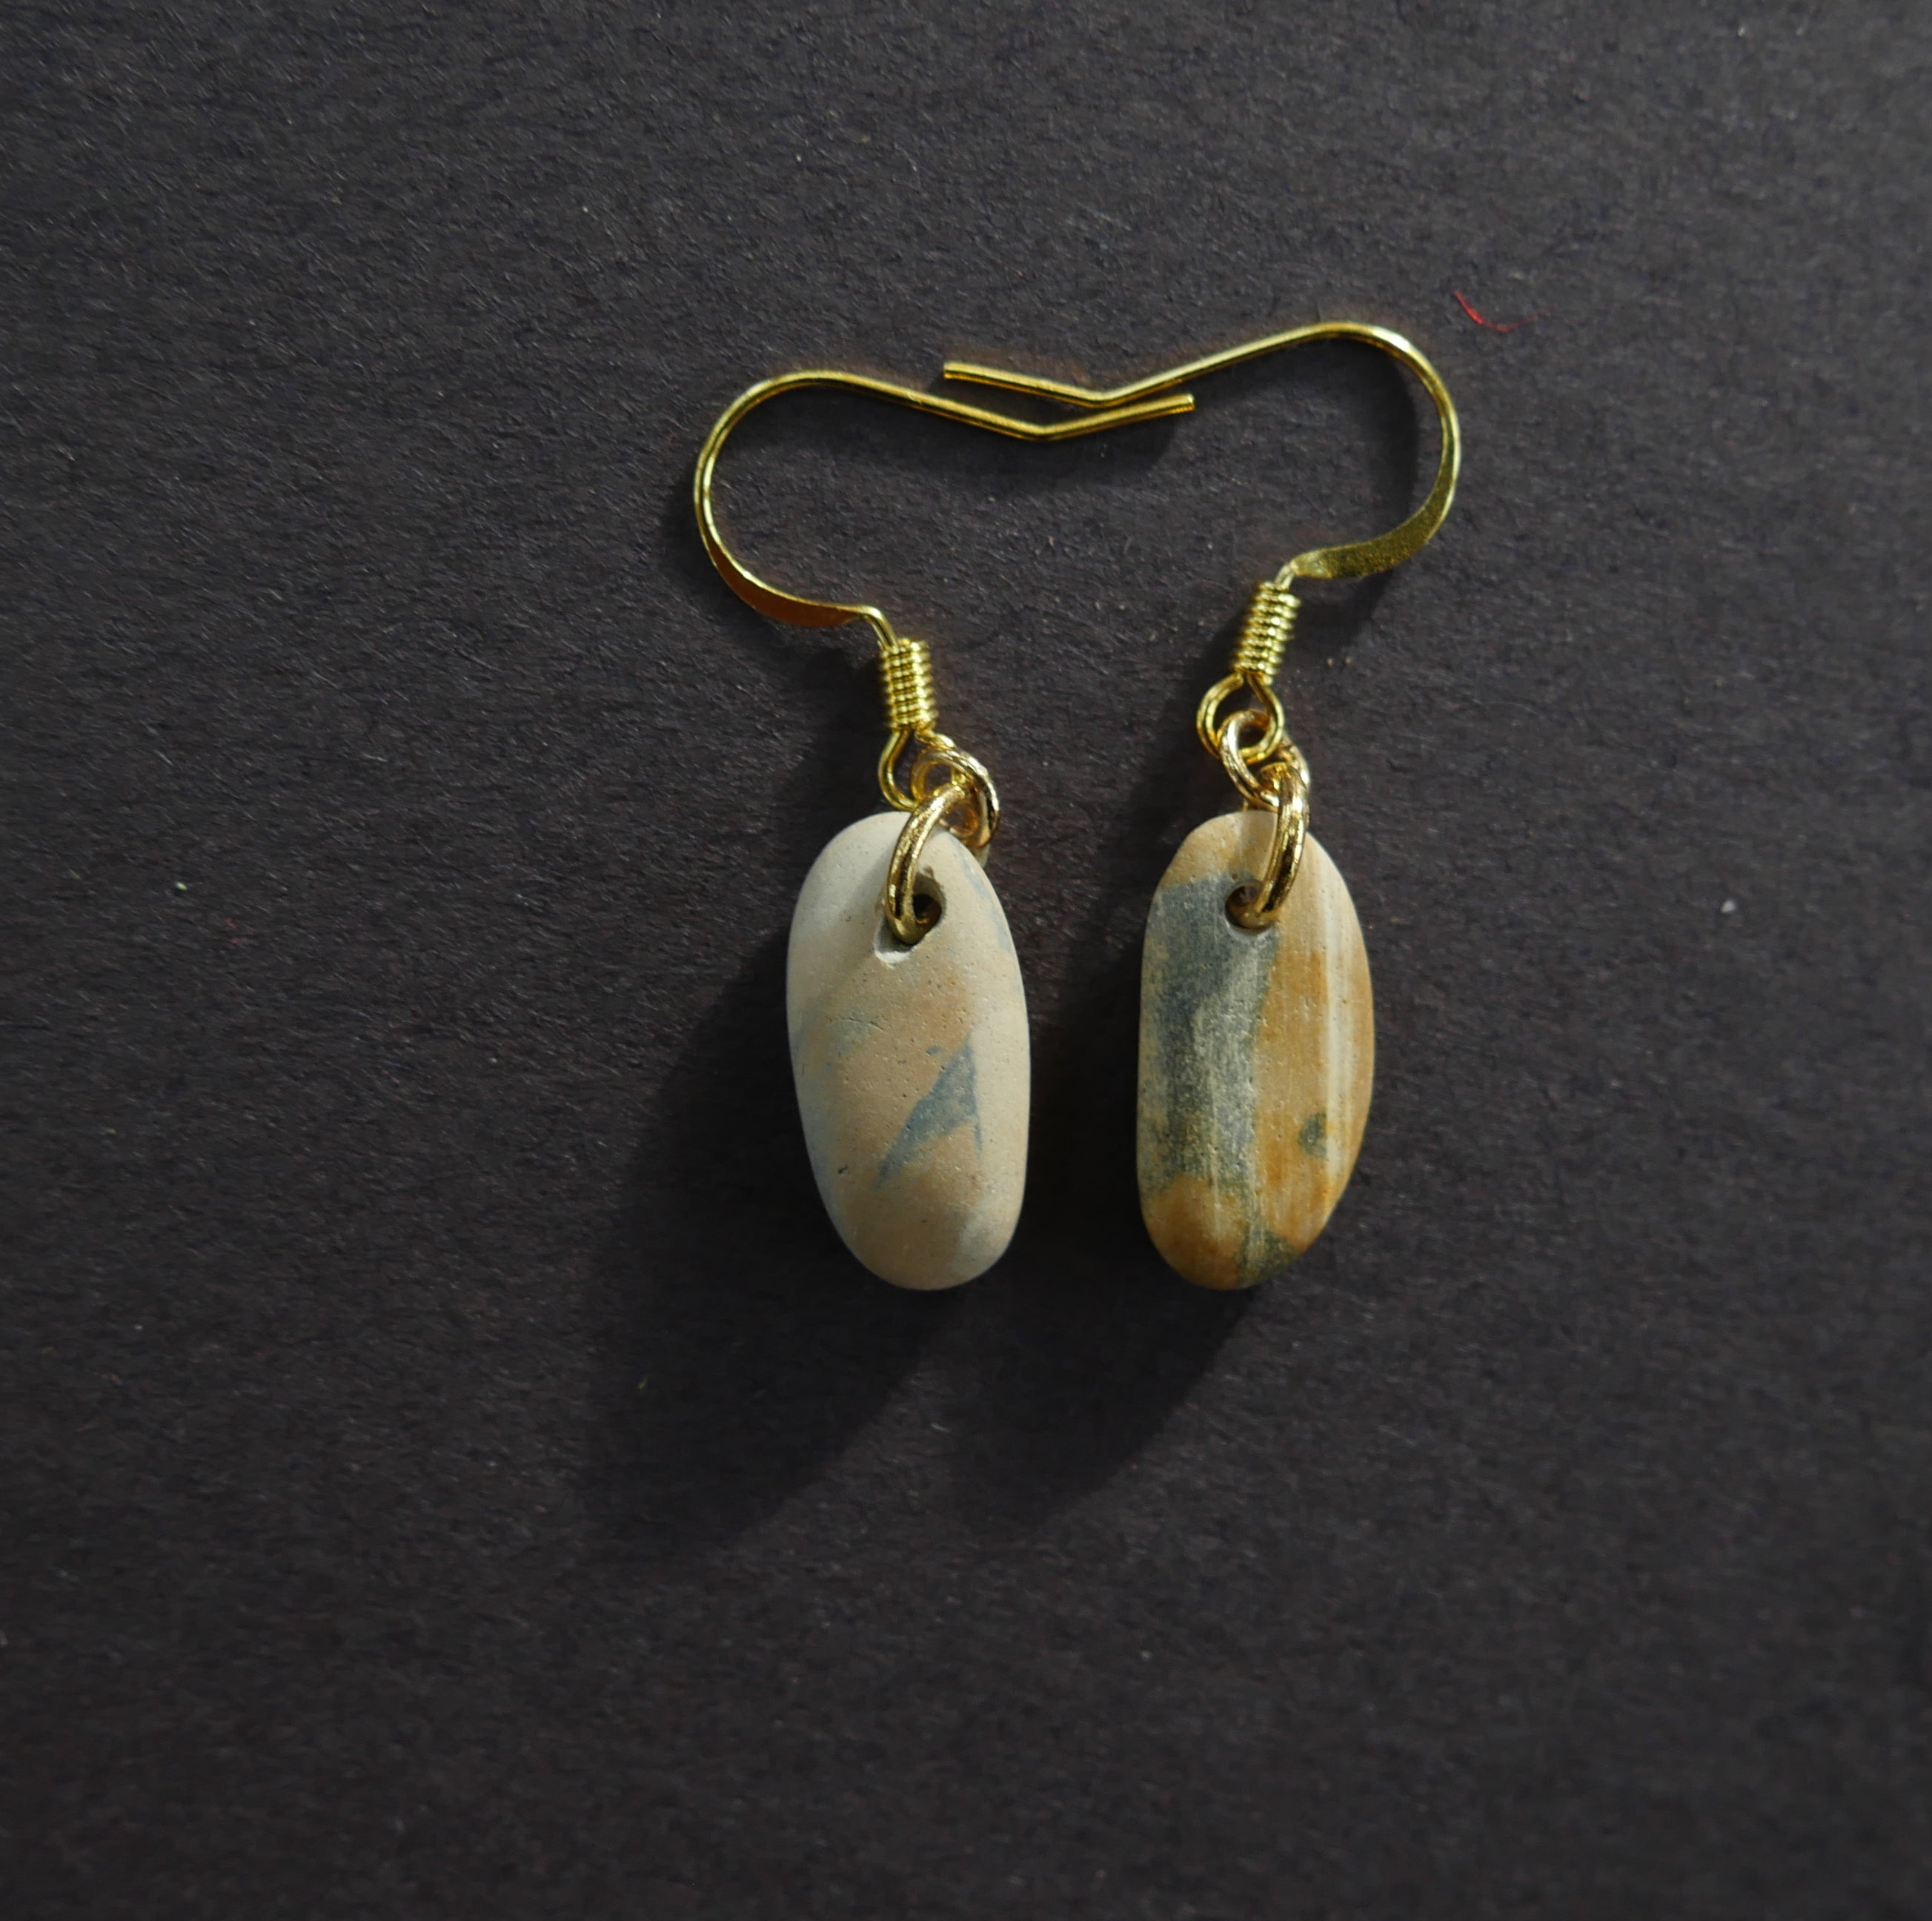 Blue yellow complementary stone earrings